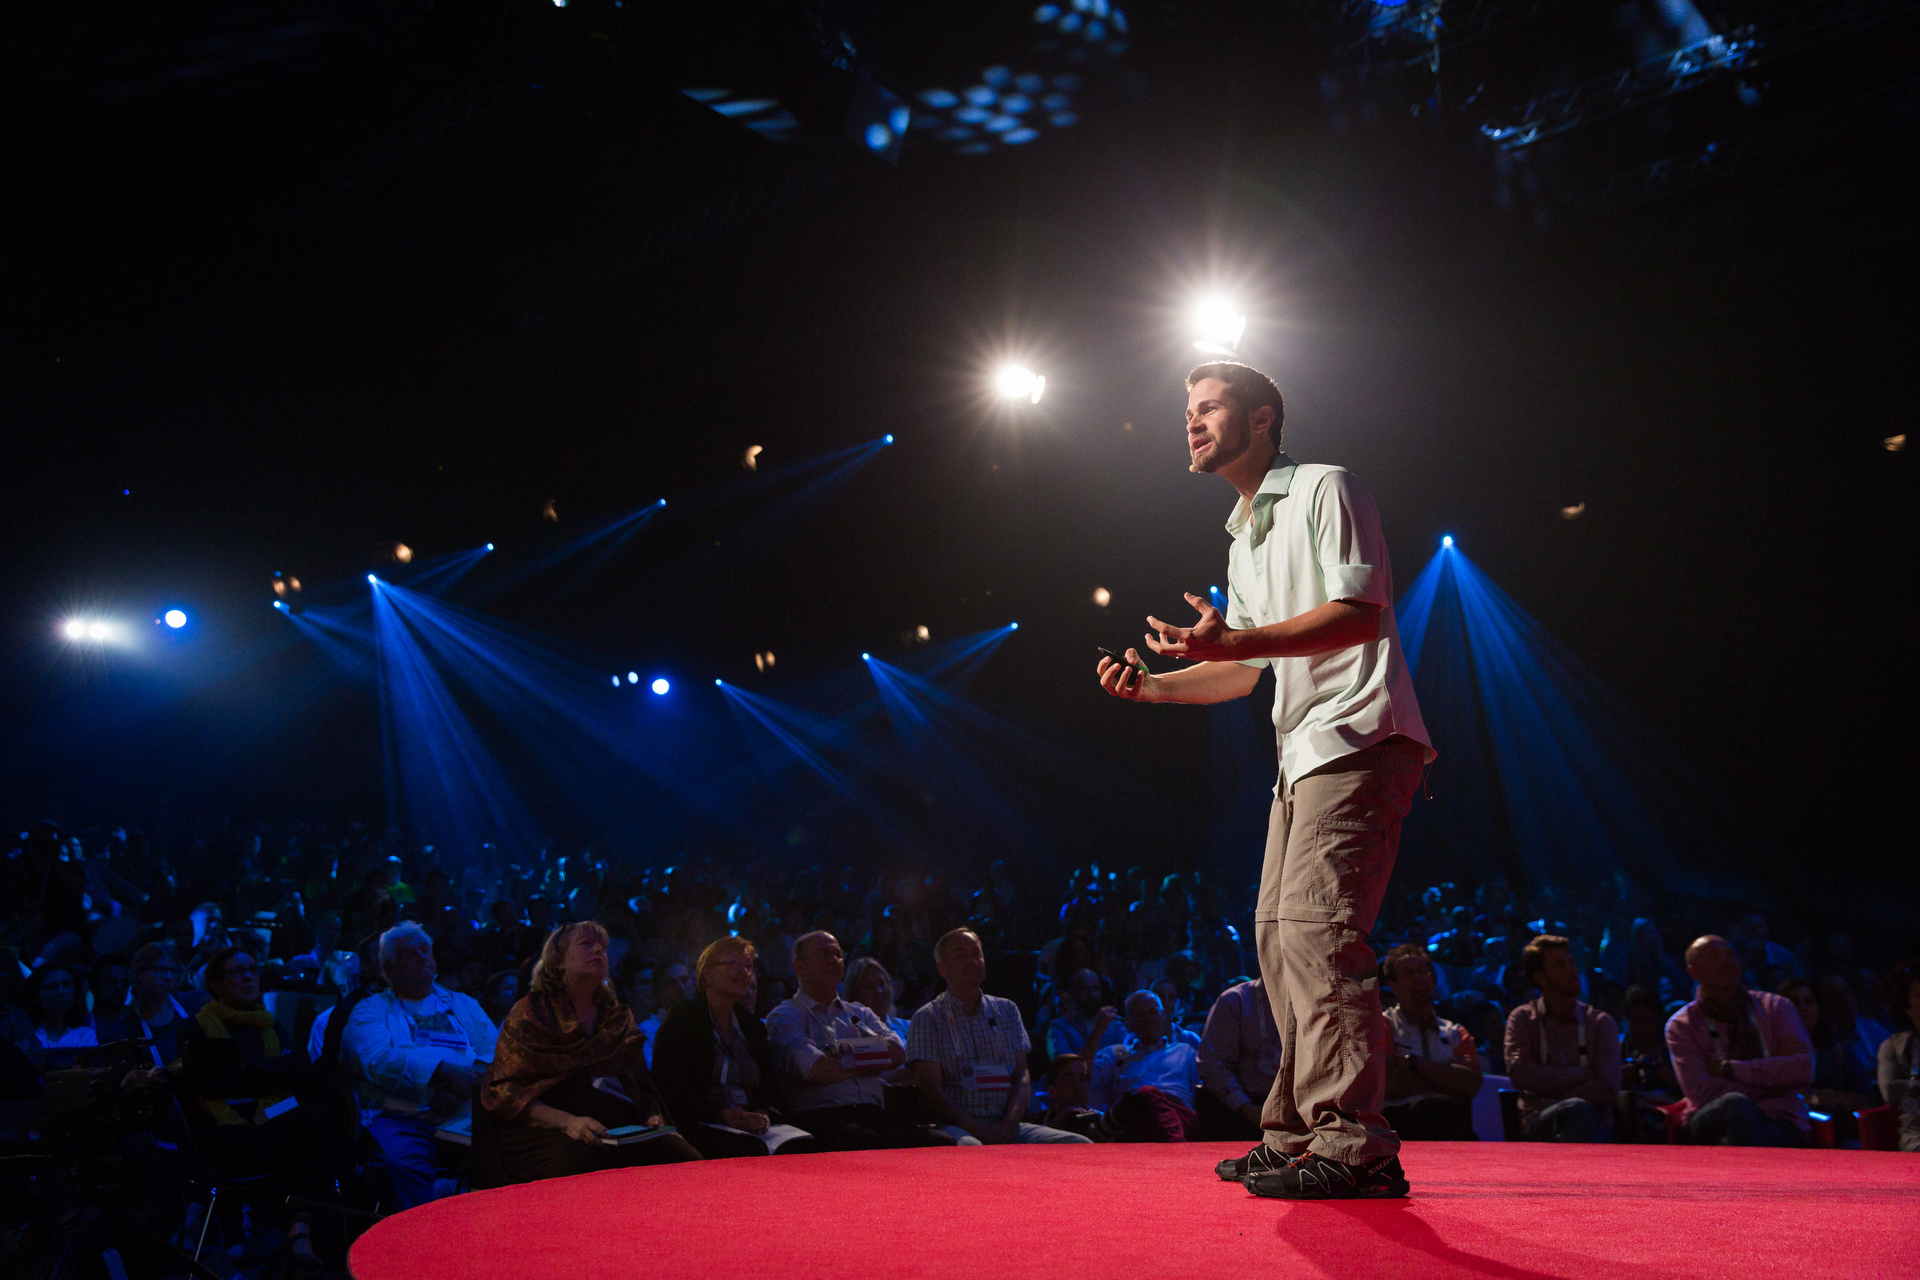 Andres Ruzo speaking at TEDGlobal 2014.